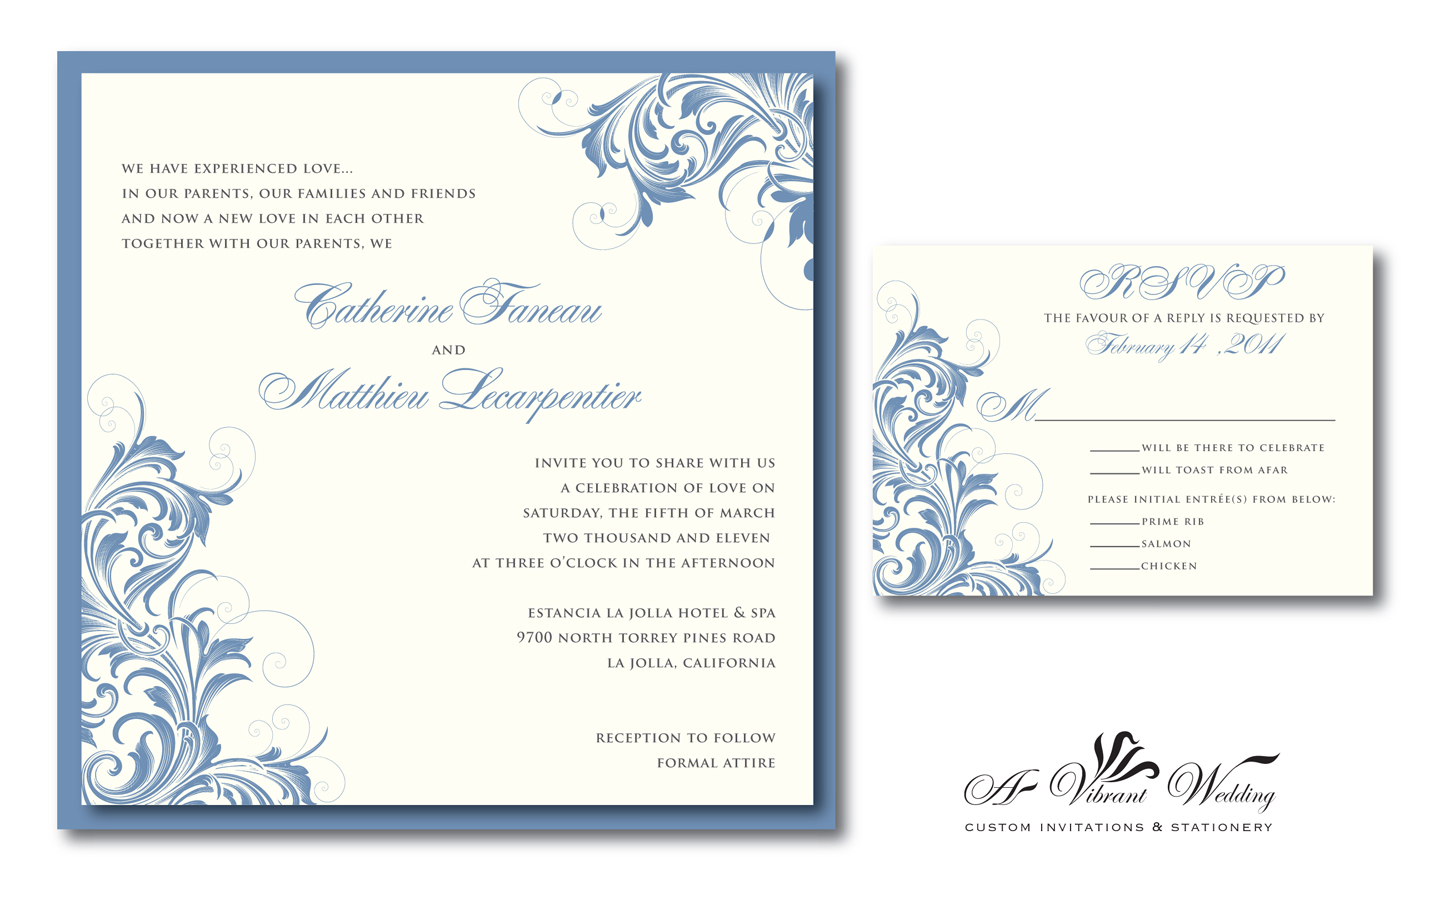 Slate Blue Wedding Invitation with Vintage Design – A ...